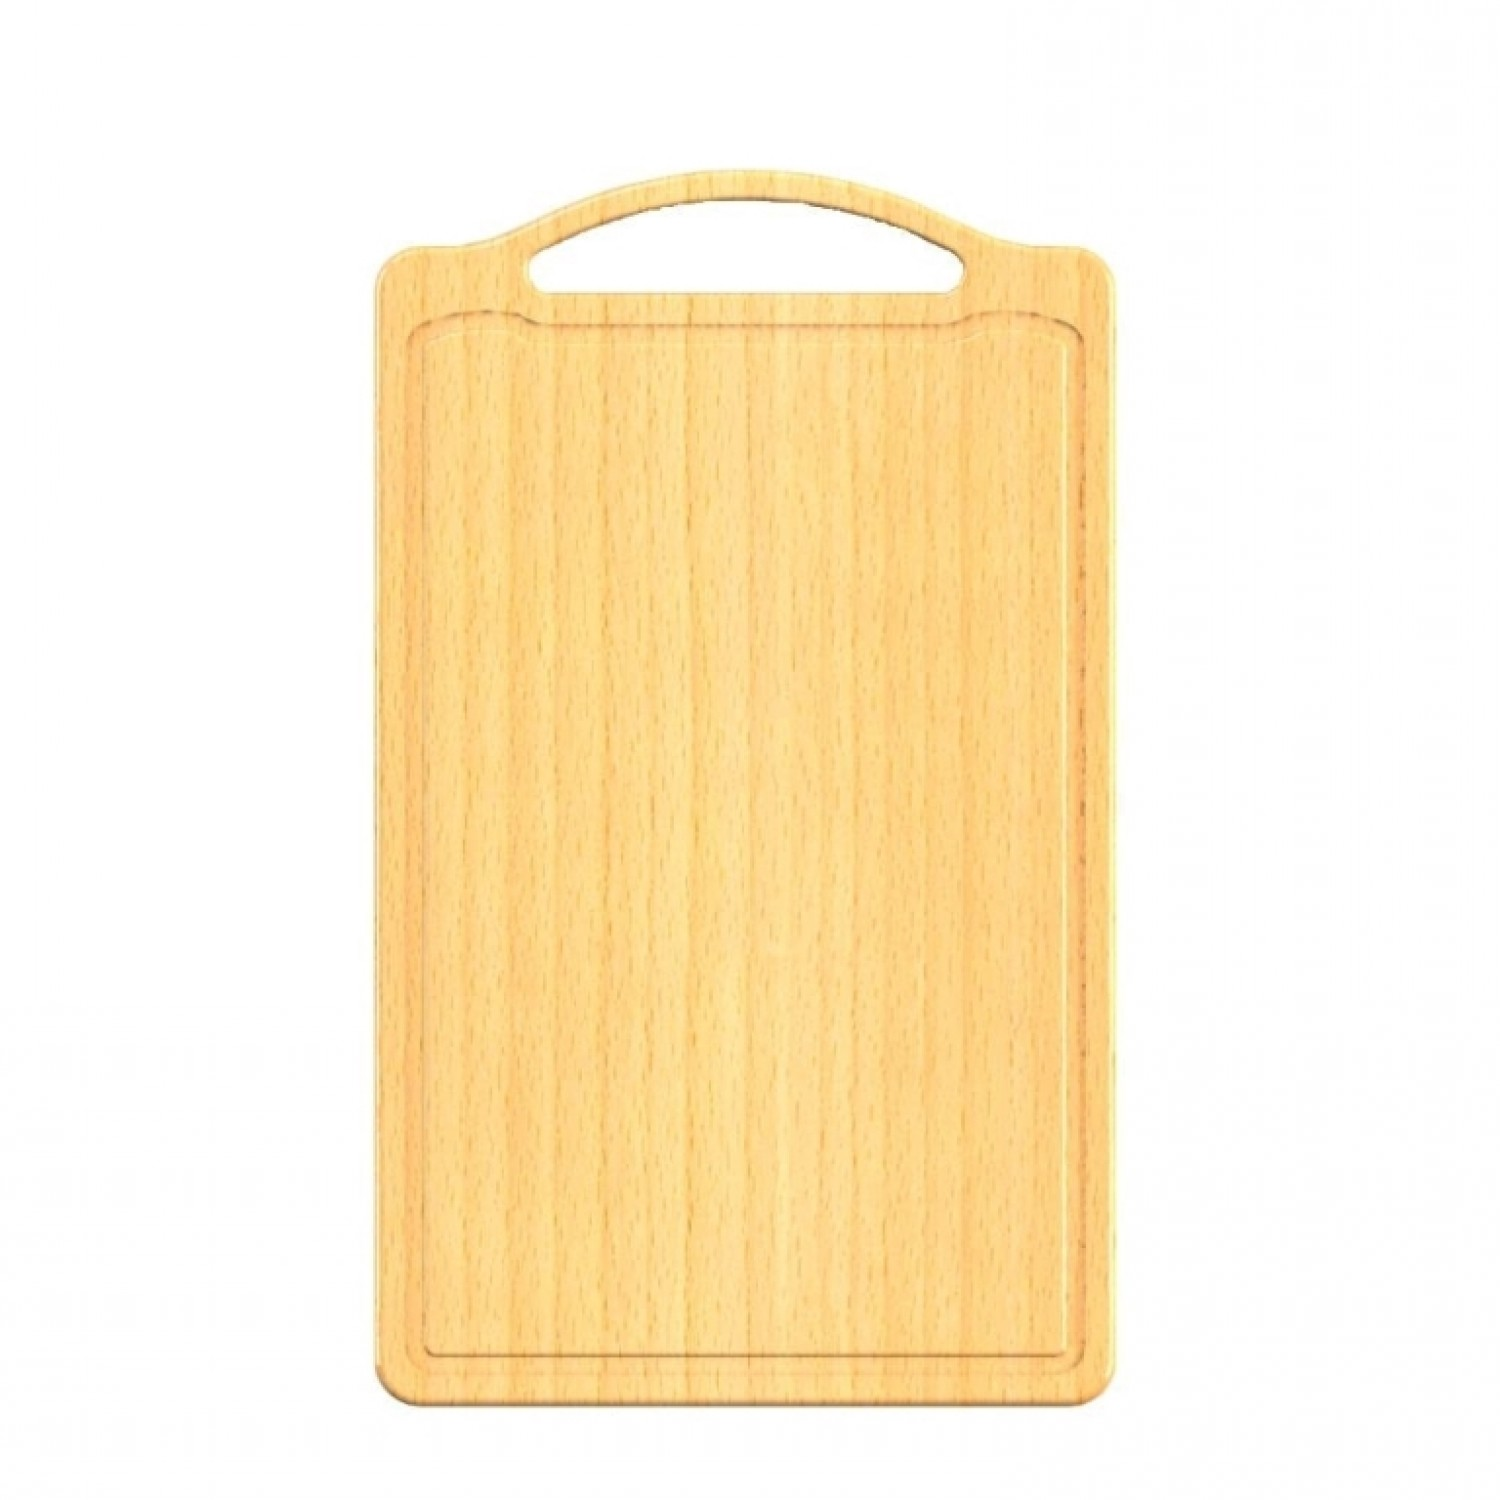 Tablet Küchenbrett Large Cutting Board Made From Beechwood